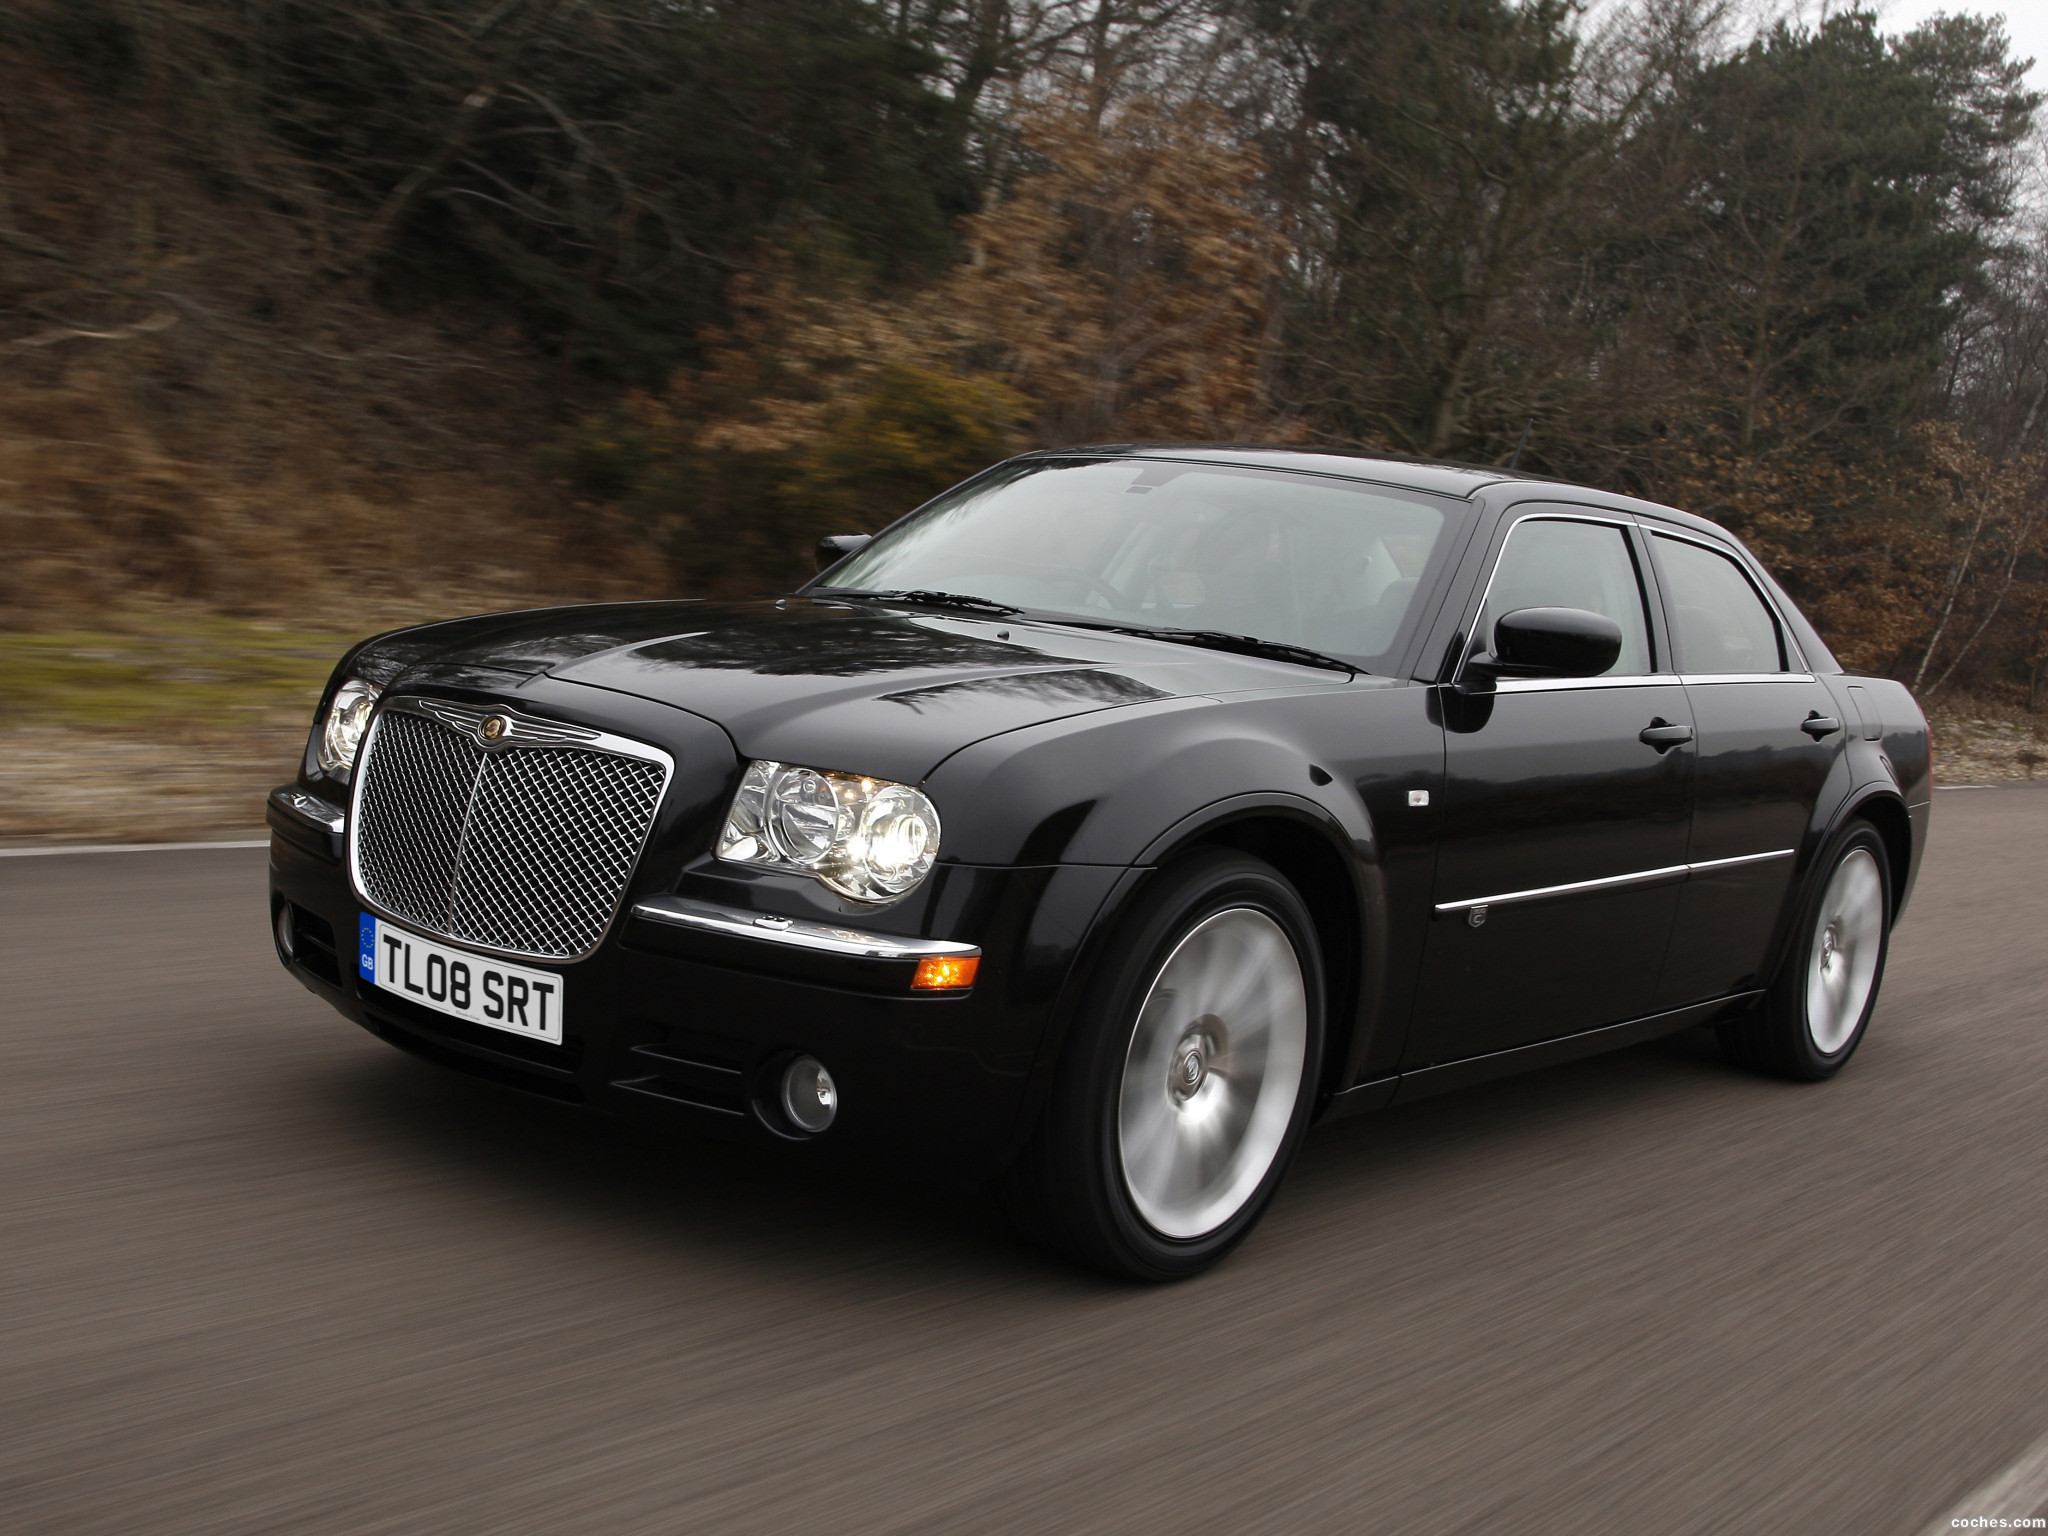 2008 Chrysler srt design